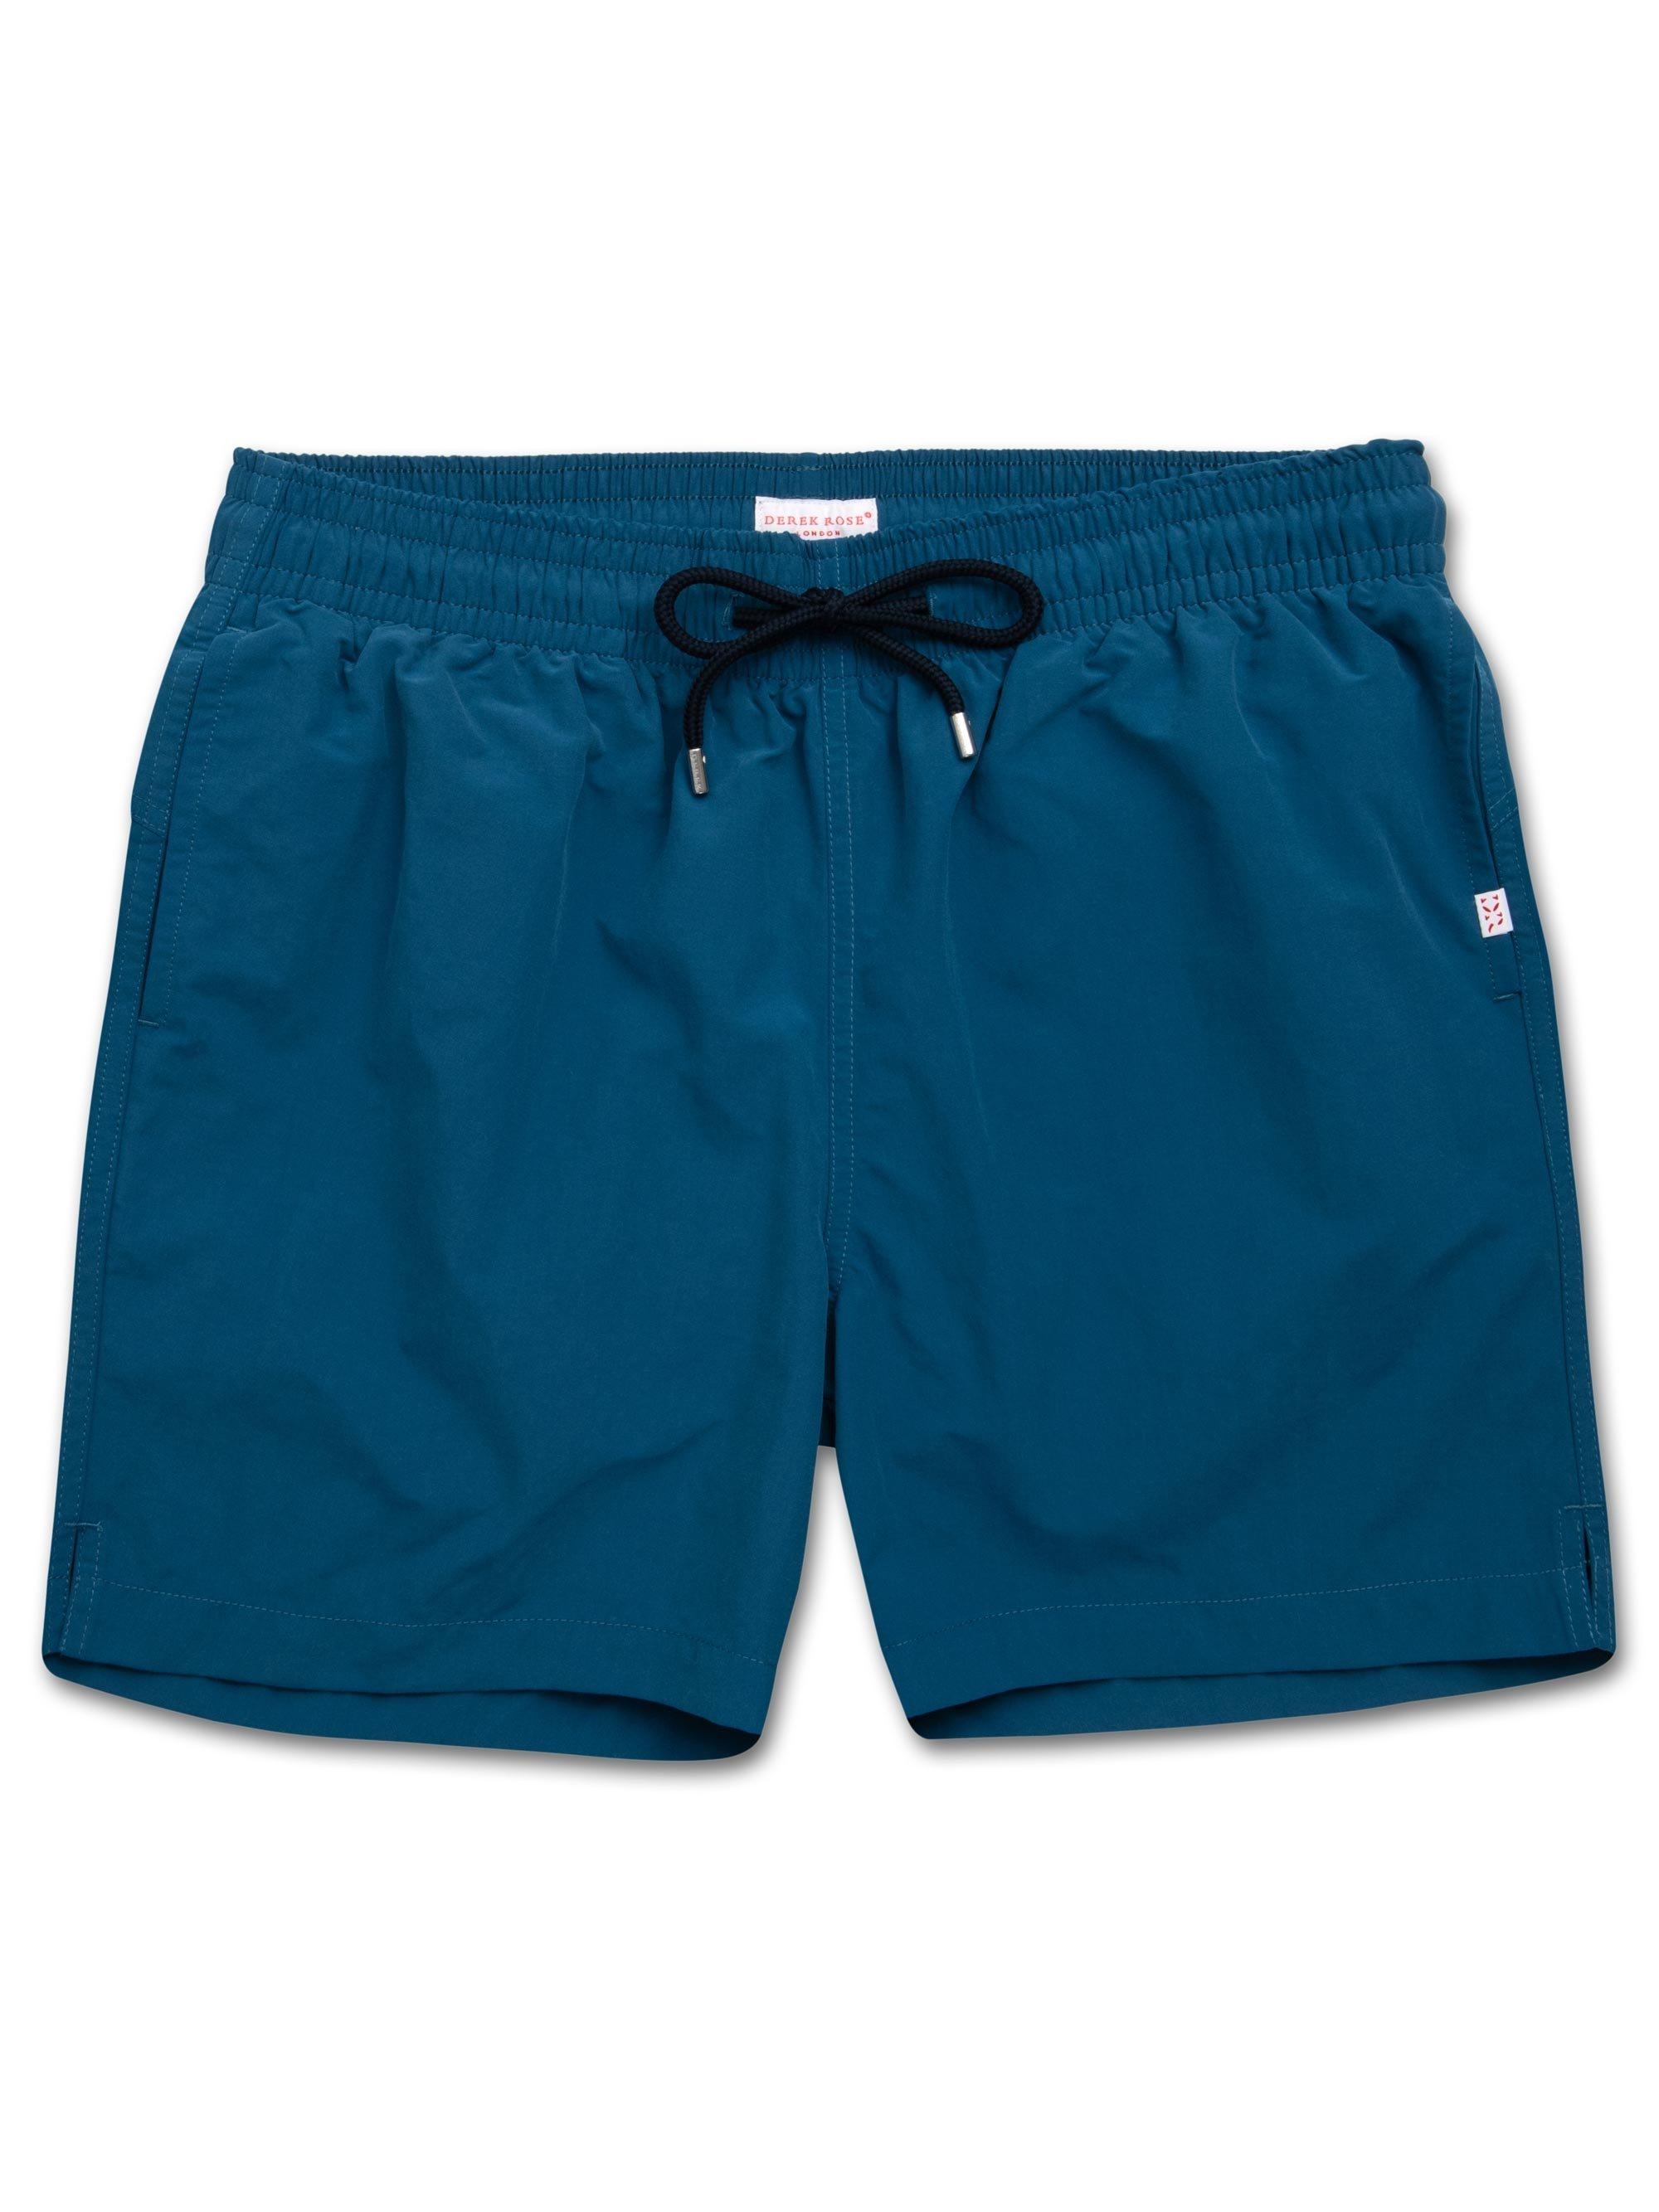 Men's Classic Fit Swim Shorts Aruba Ocean